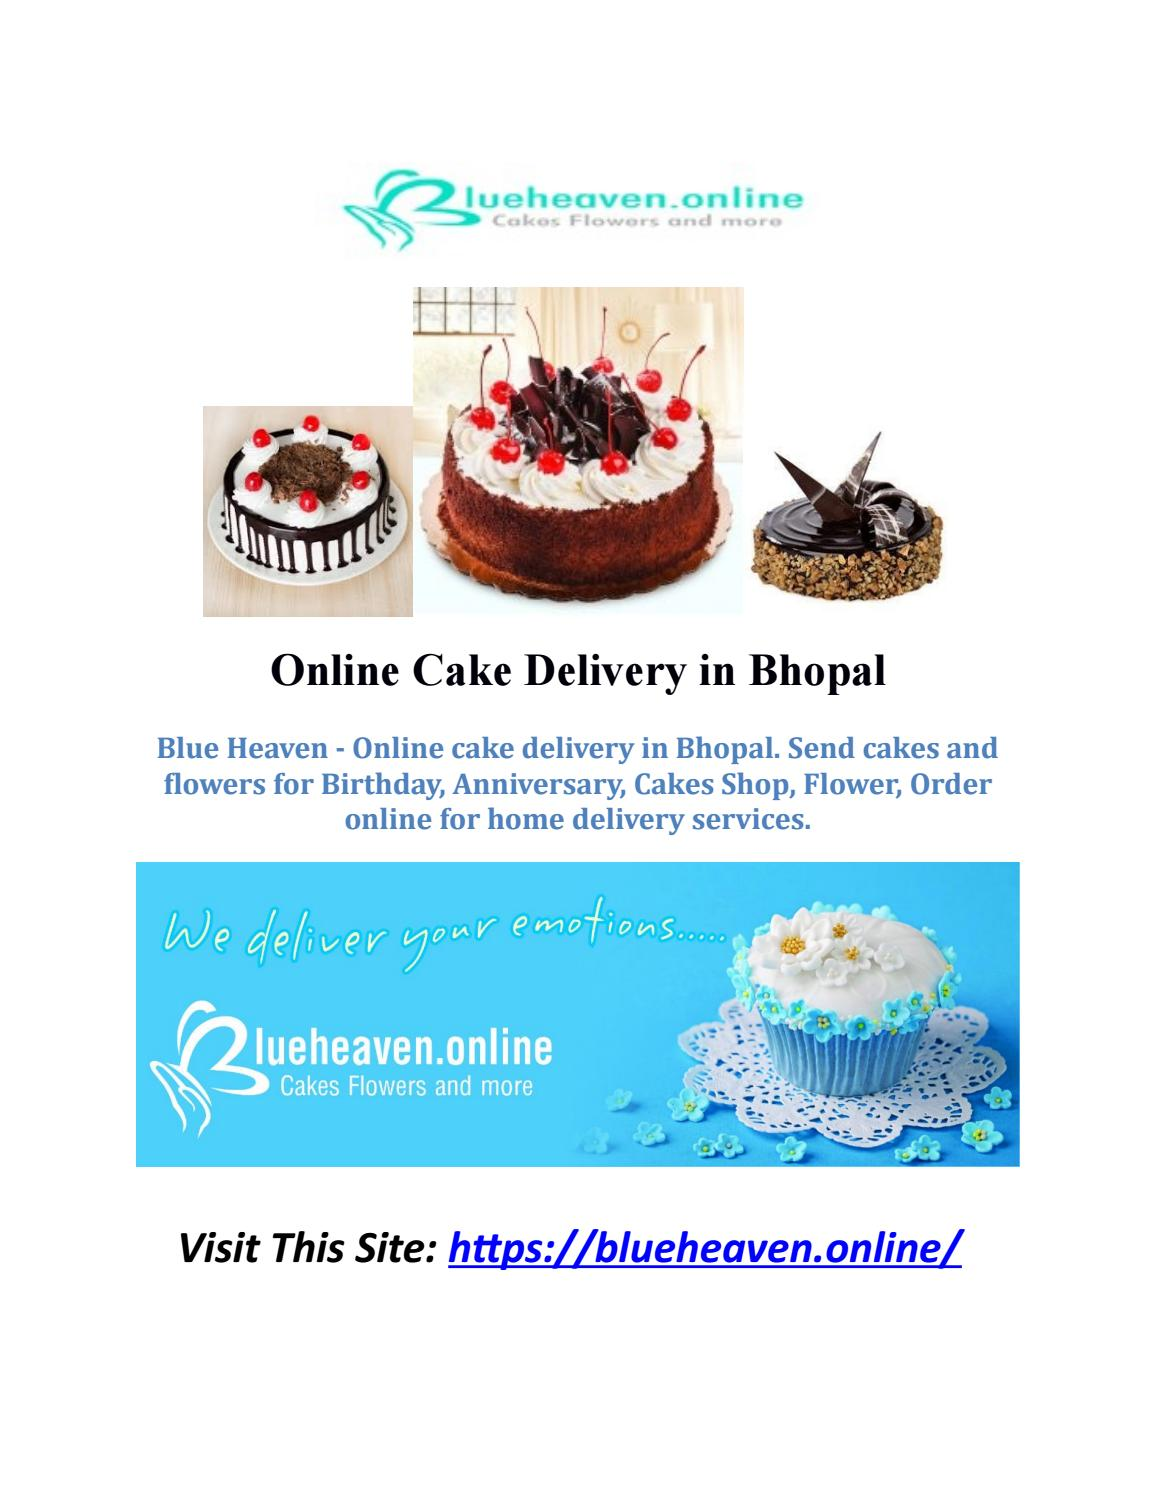 Online Cake Delivery In Bhopal By Megan Wade Issuu